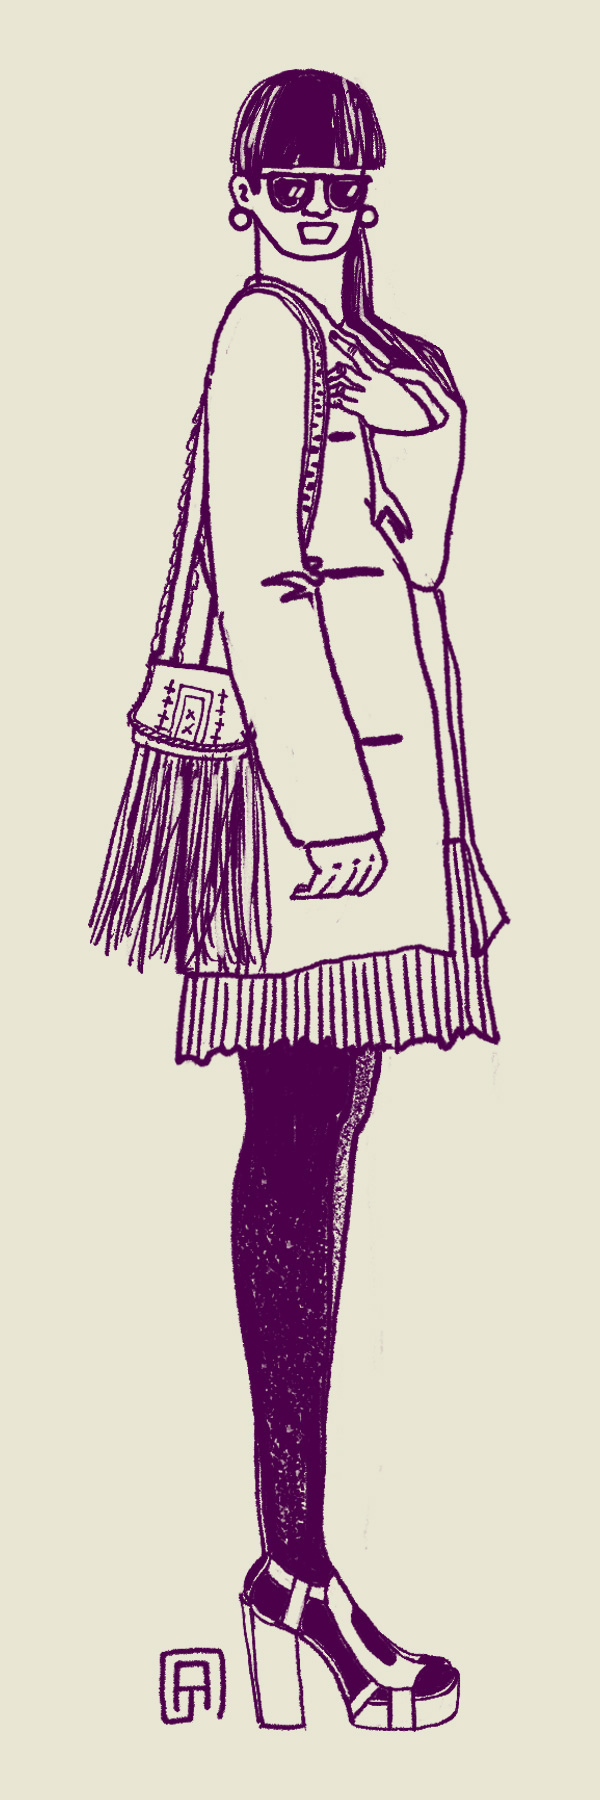 street fashion street wear sketching sketches outfitoftheday OOTD people streetstyle fashion illustration